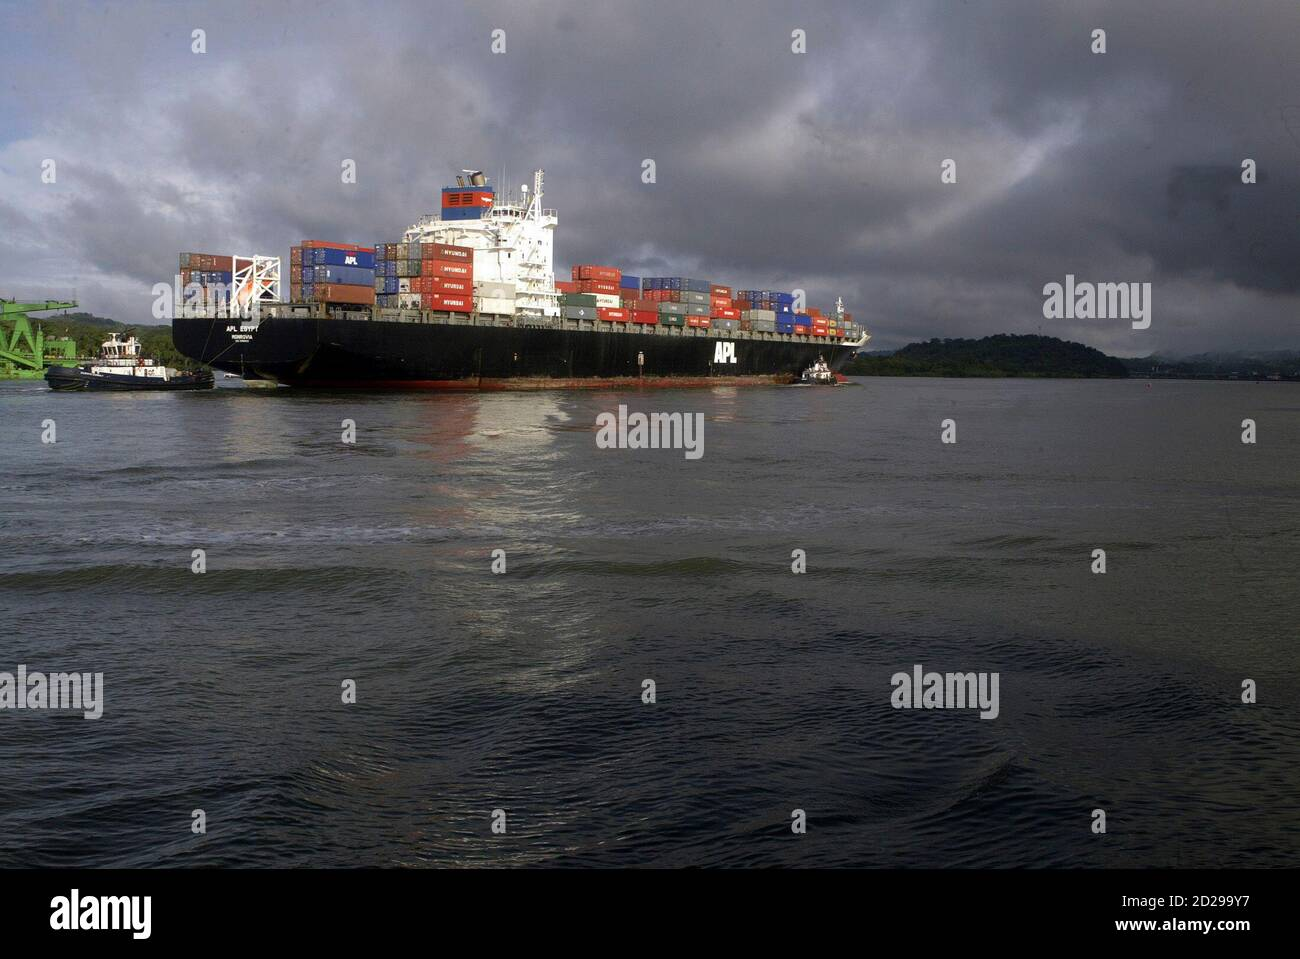 A cargo ship enters the Pacific entrance of the Panama Canal November 17, 2008. The Pacific and Atlantic entrances to the Canal will be dredged to a width of 225m and a depth of 15.5m to allow ships bigger than the current Panamax dimensions to travel through the third locks. REUTERS/Alberto Lowe (PANAMA) Stock Photo